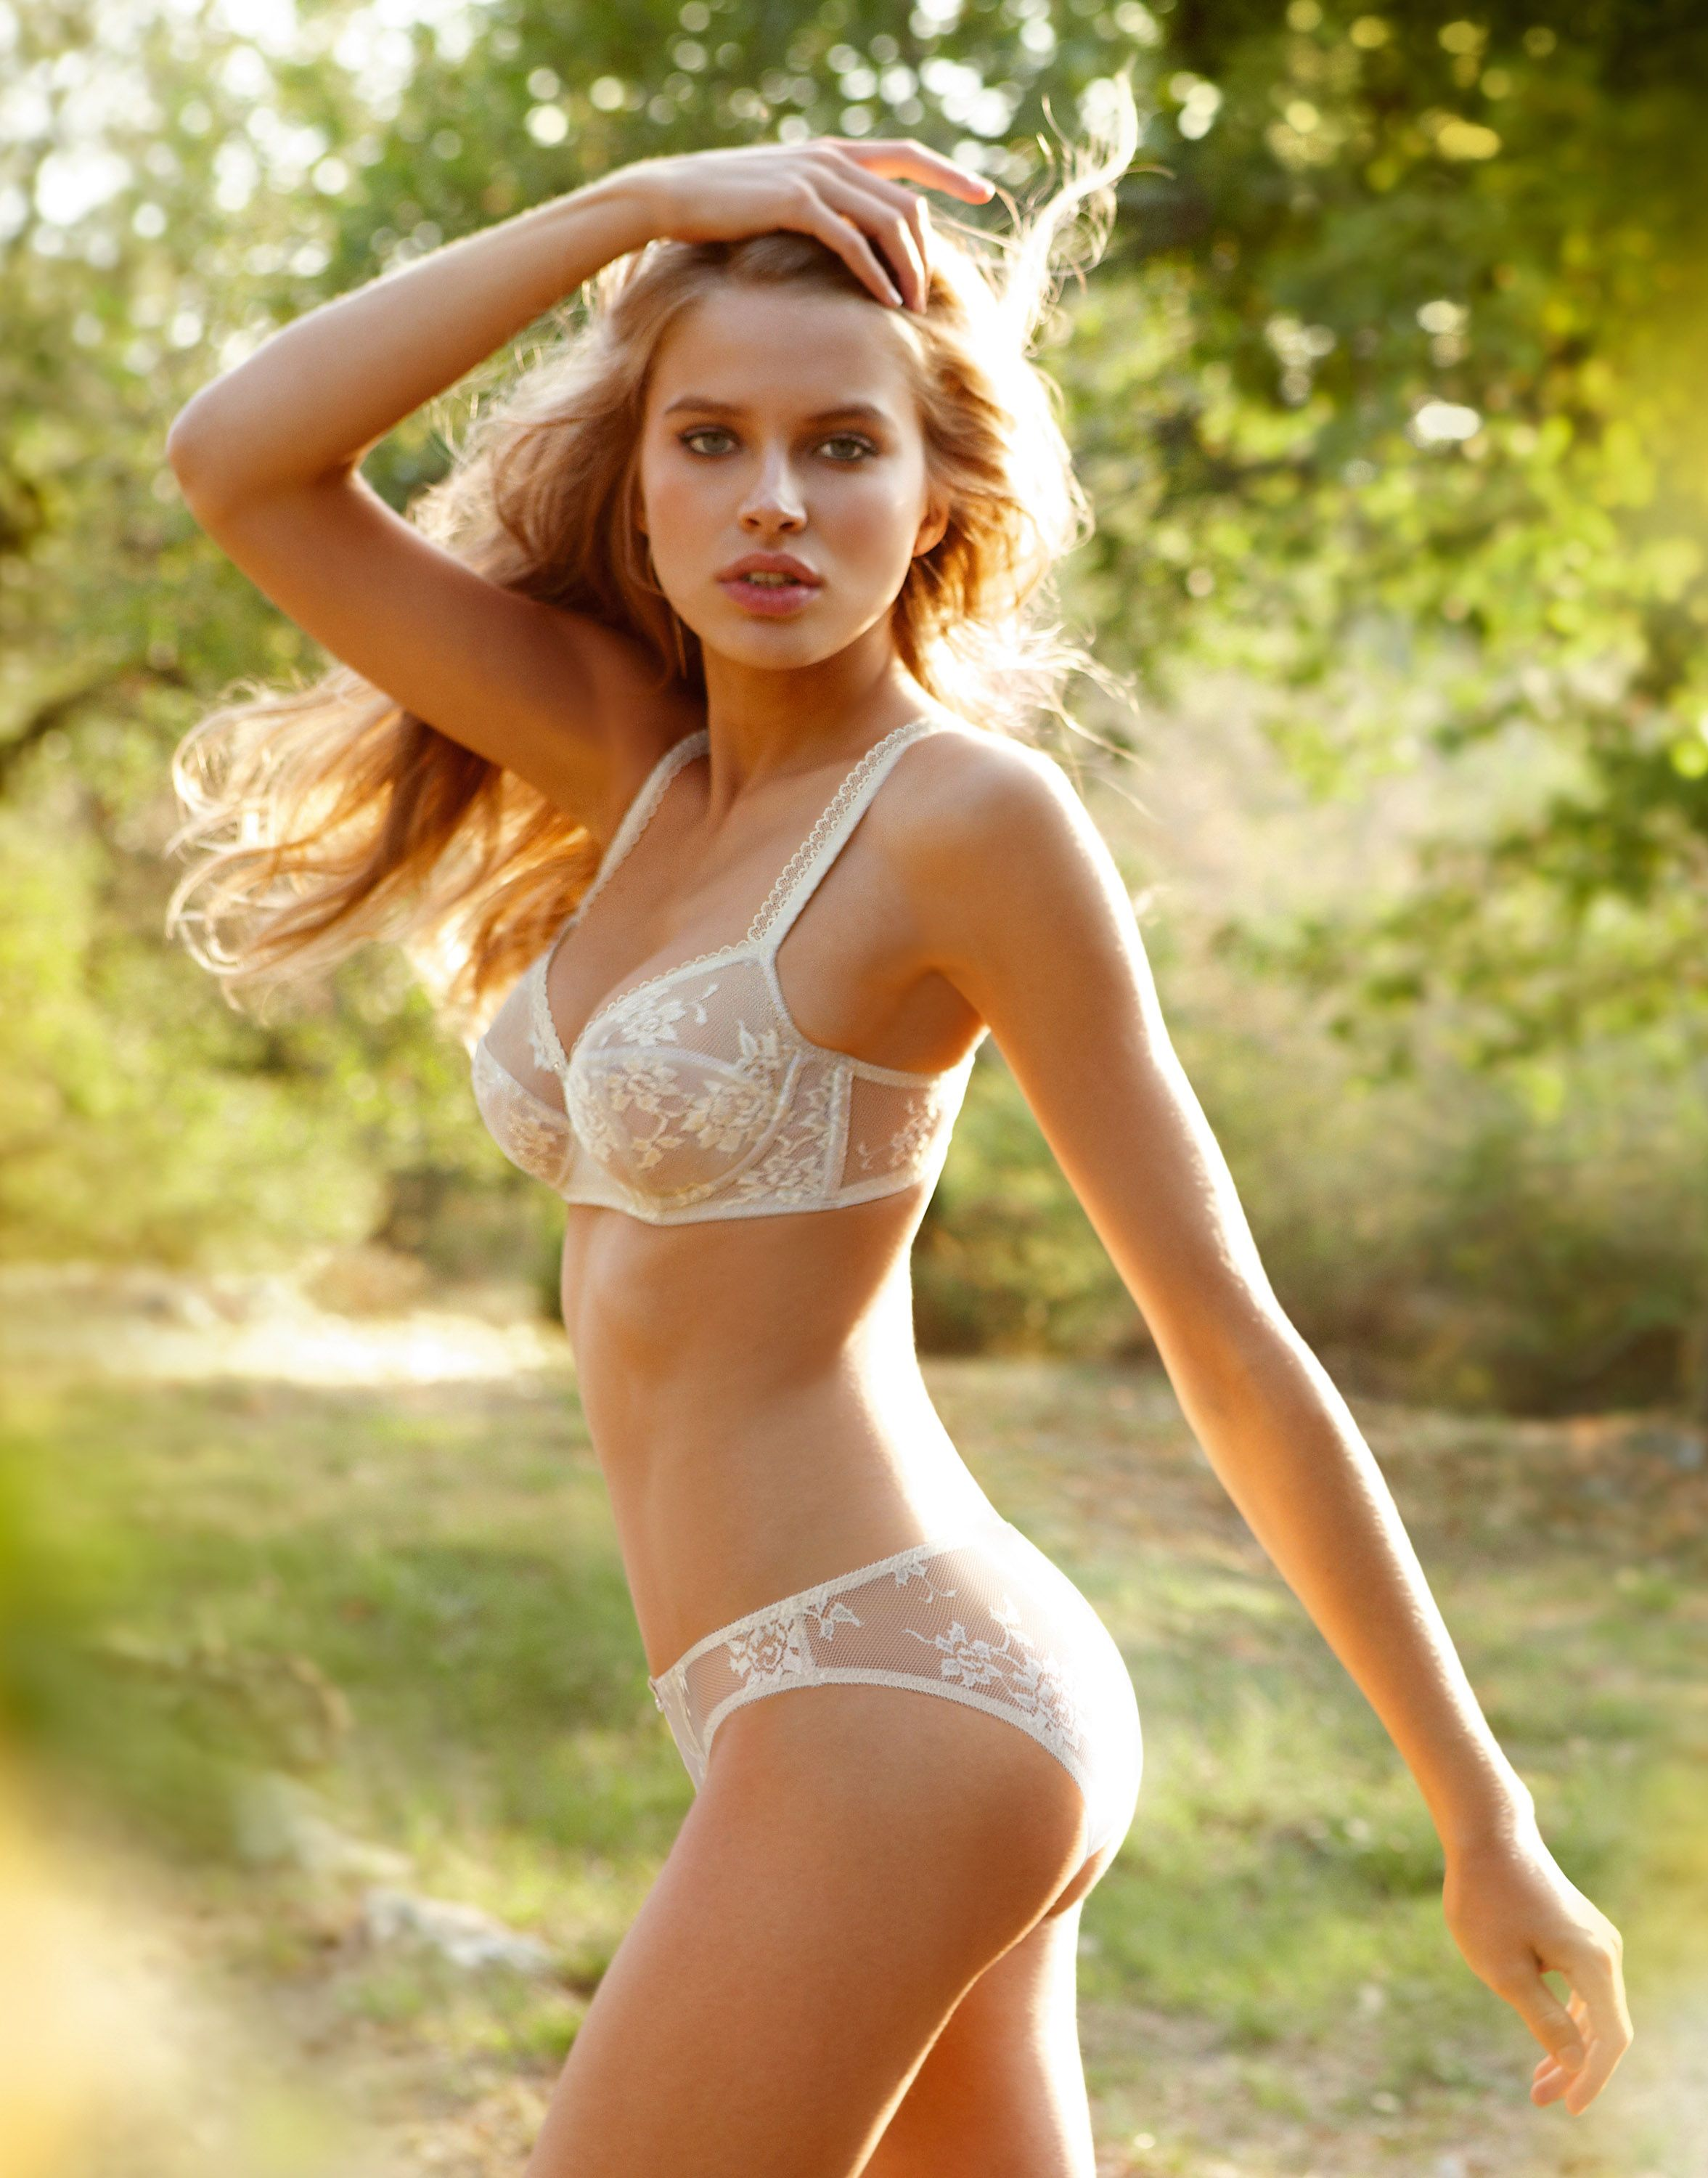 Russian model Tanya Mityushina